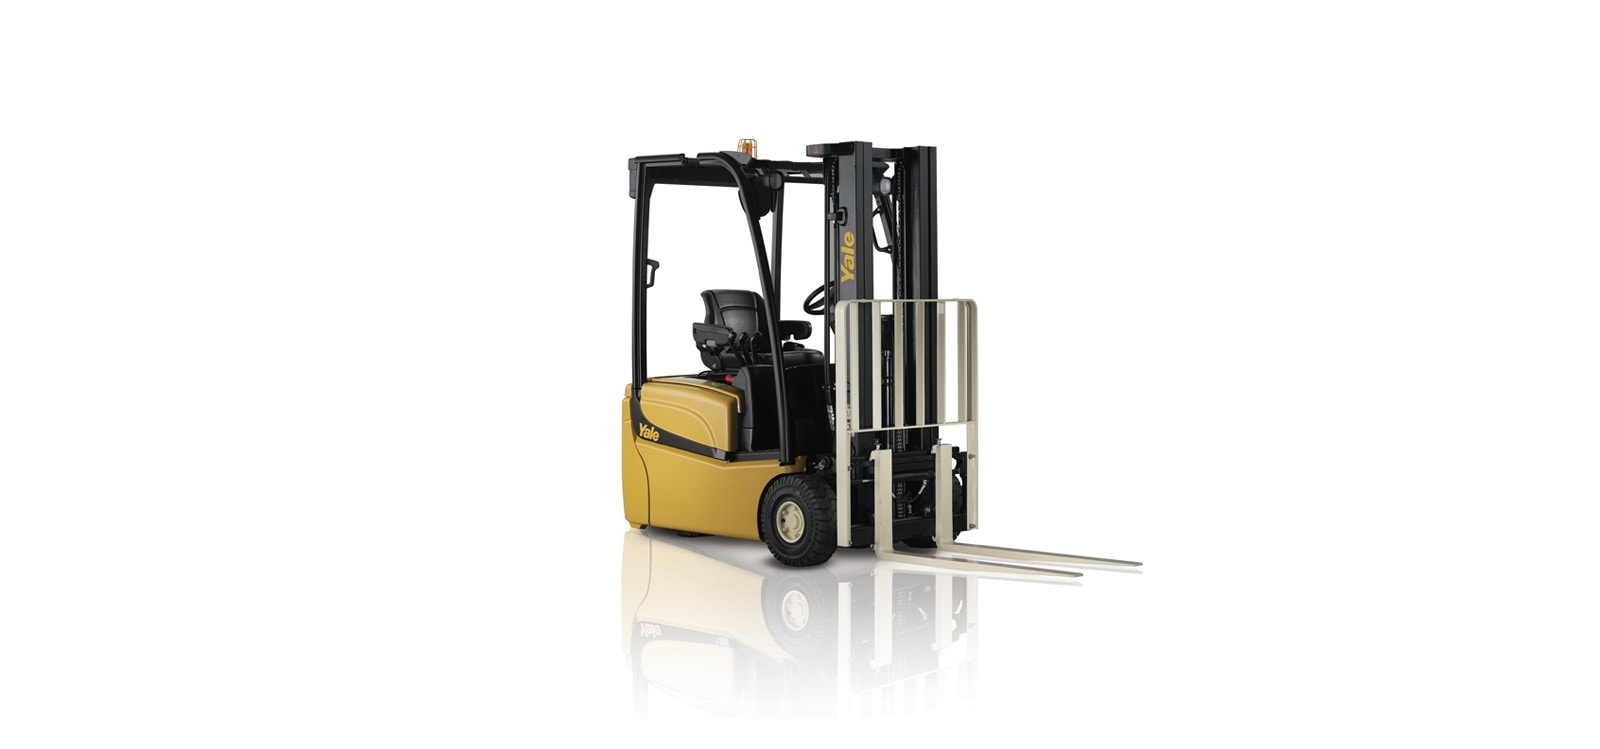 3 Wheel Electric Forklift Supplier In India